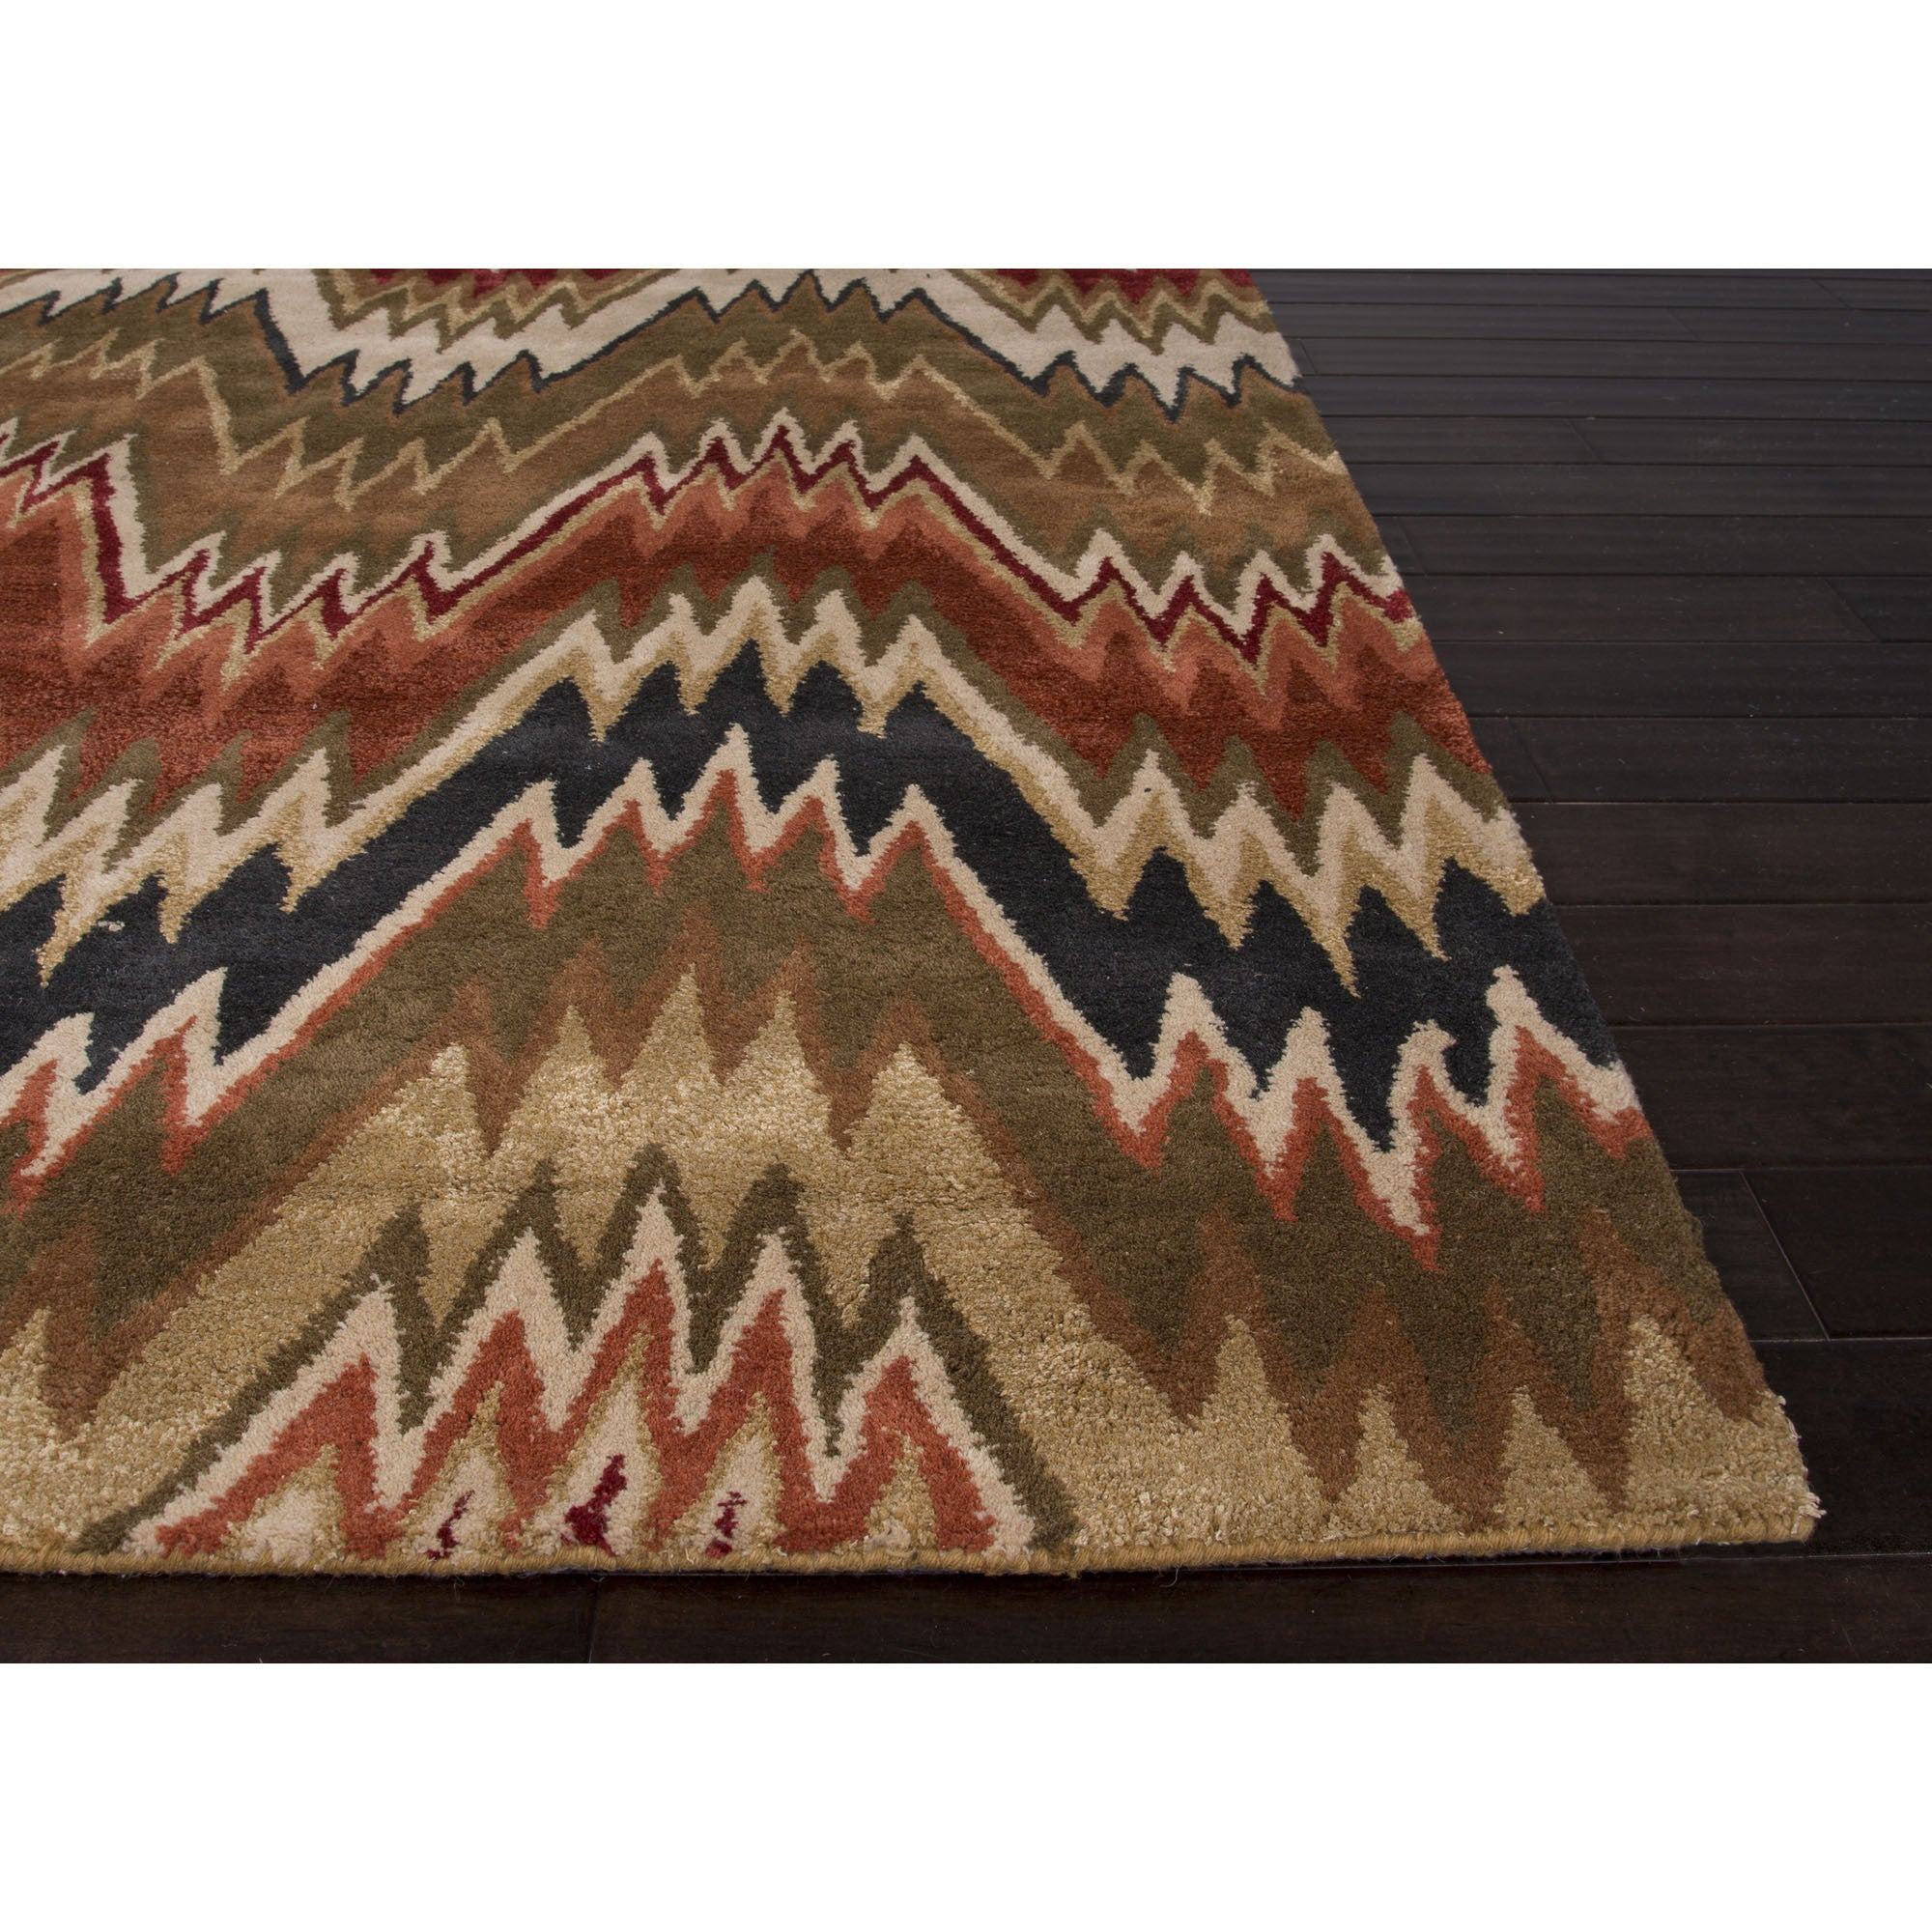 Jaipur rugs modern stripe pattern brown red wool and art for Red and white striped area rug